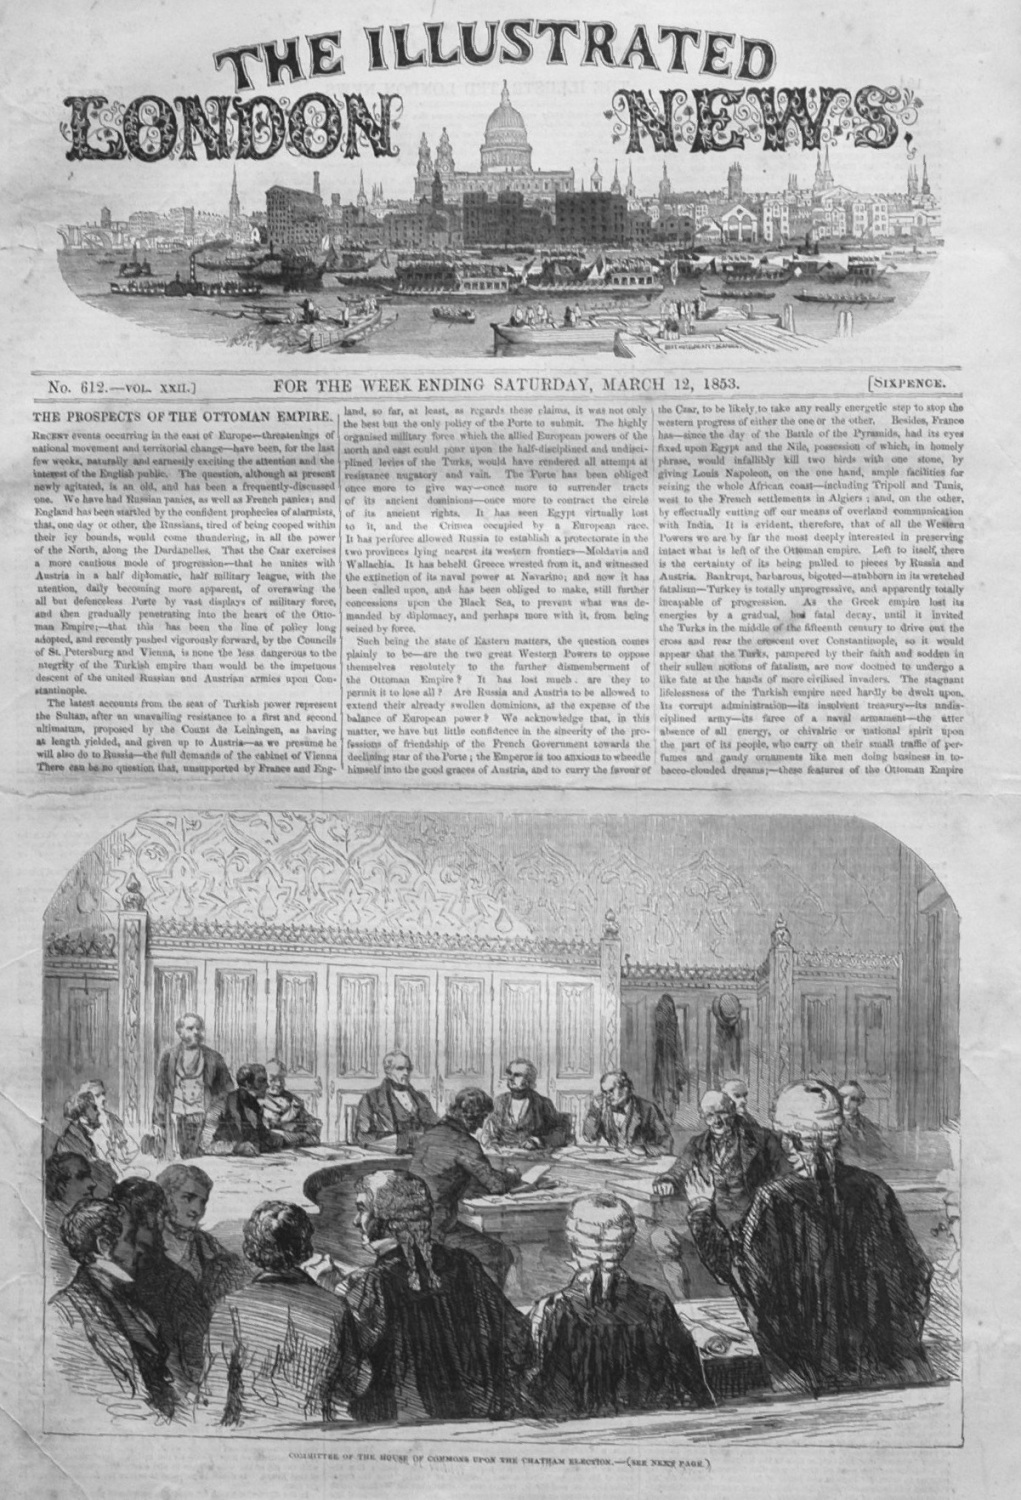 Illustrated London News March 12th 1853.